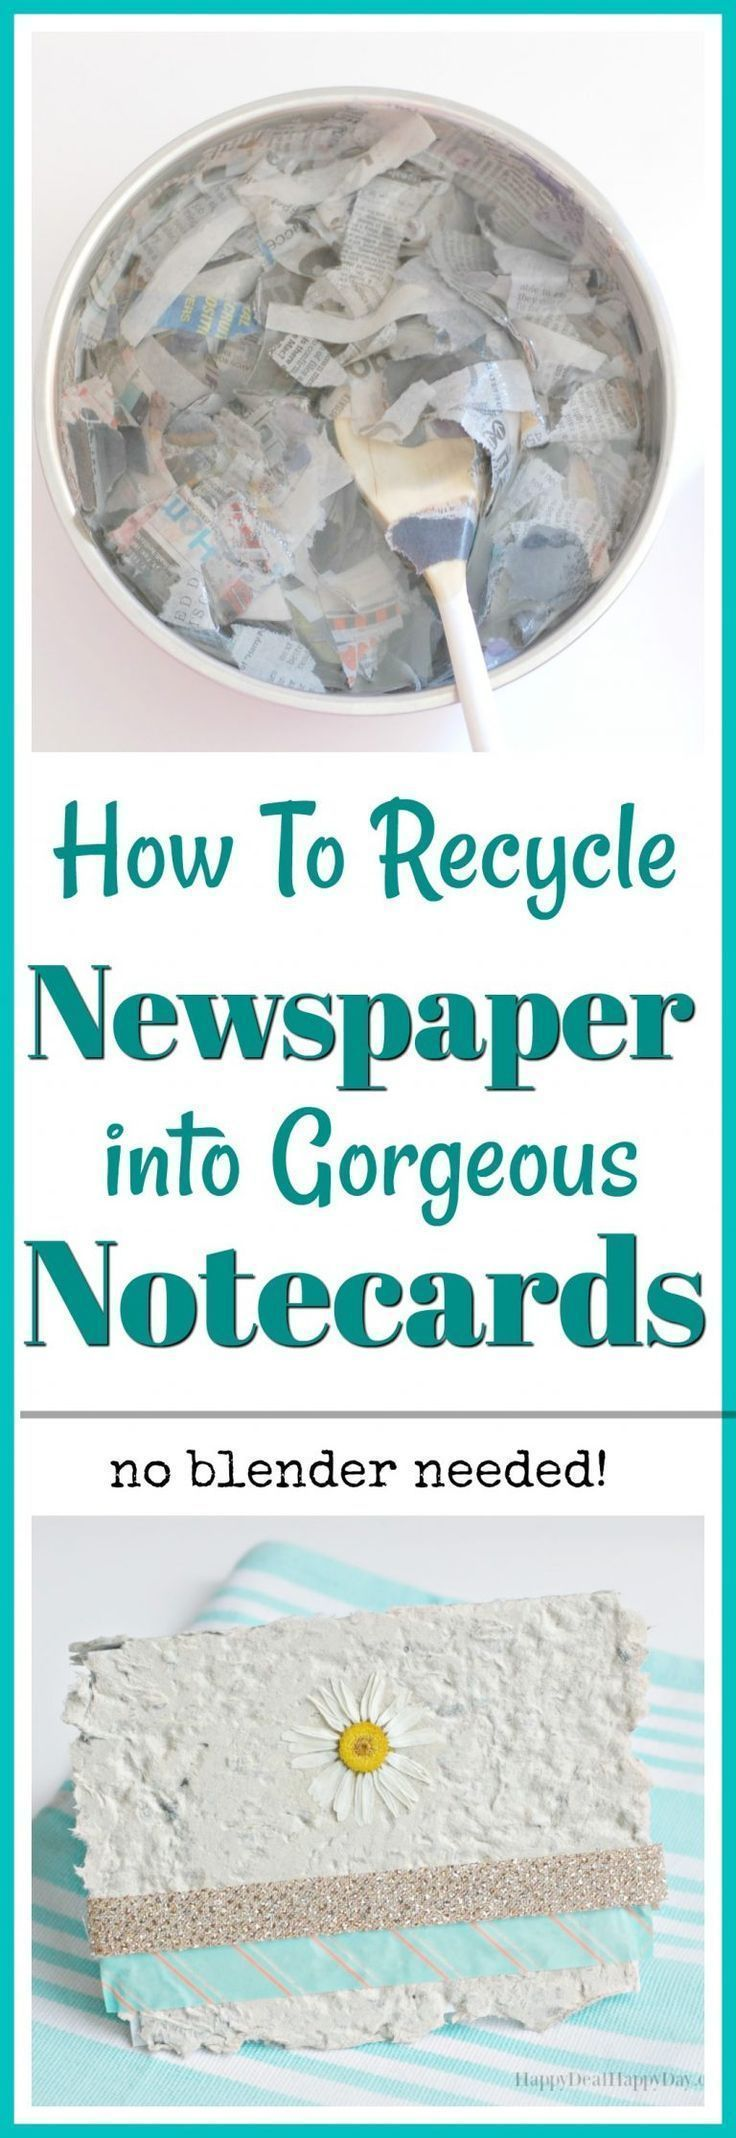 How To Recycle Newspaper Into Gorgeous Notecards - No Blender Needed #recycledcrafts